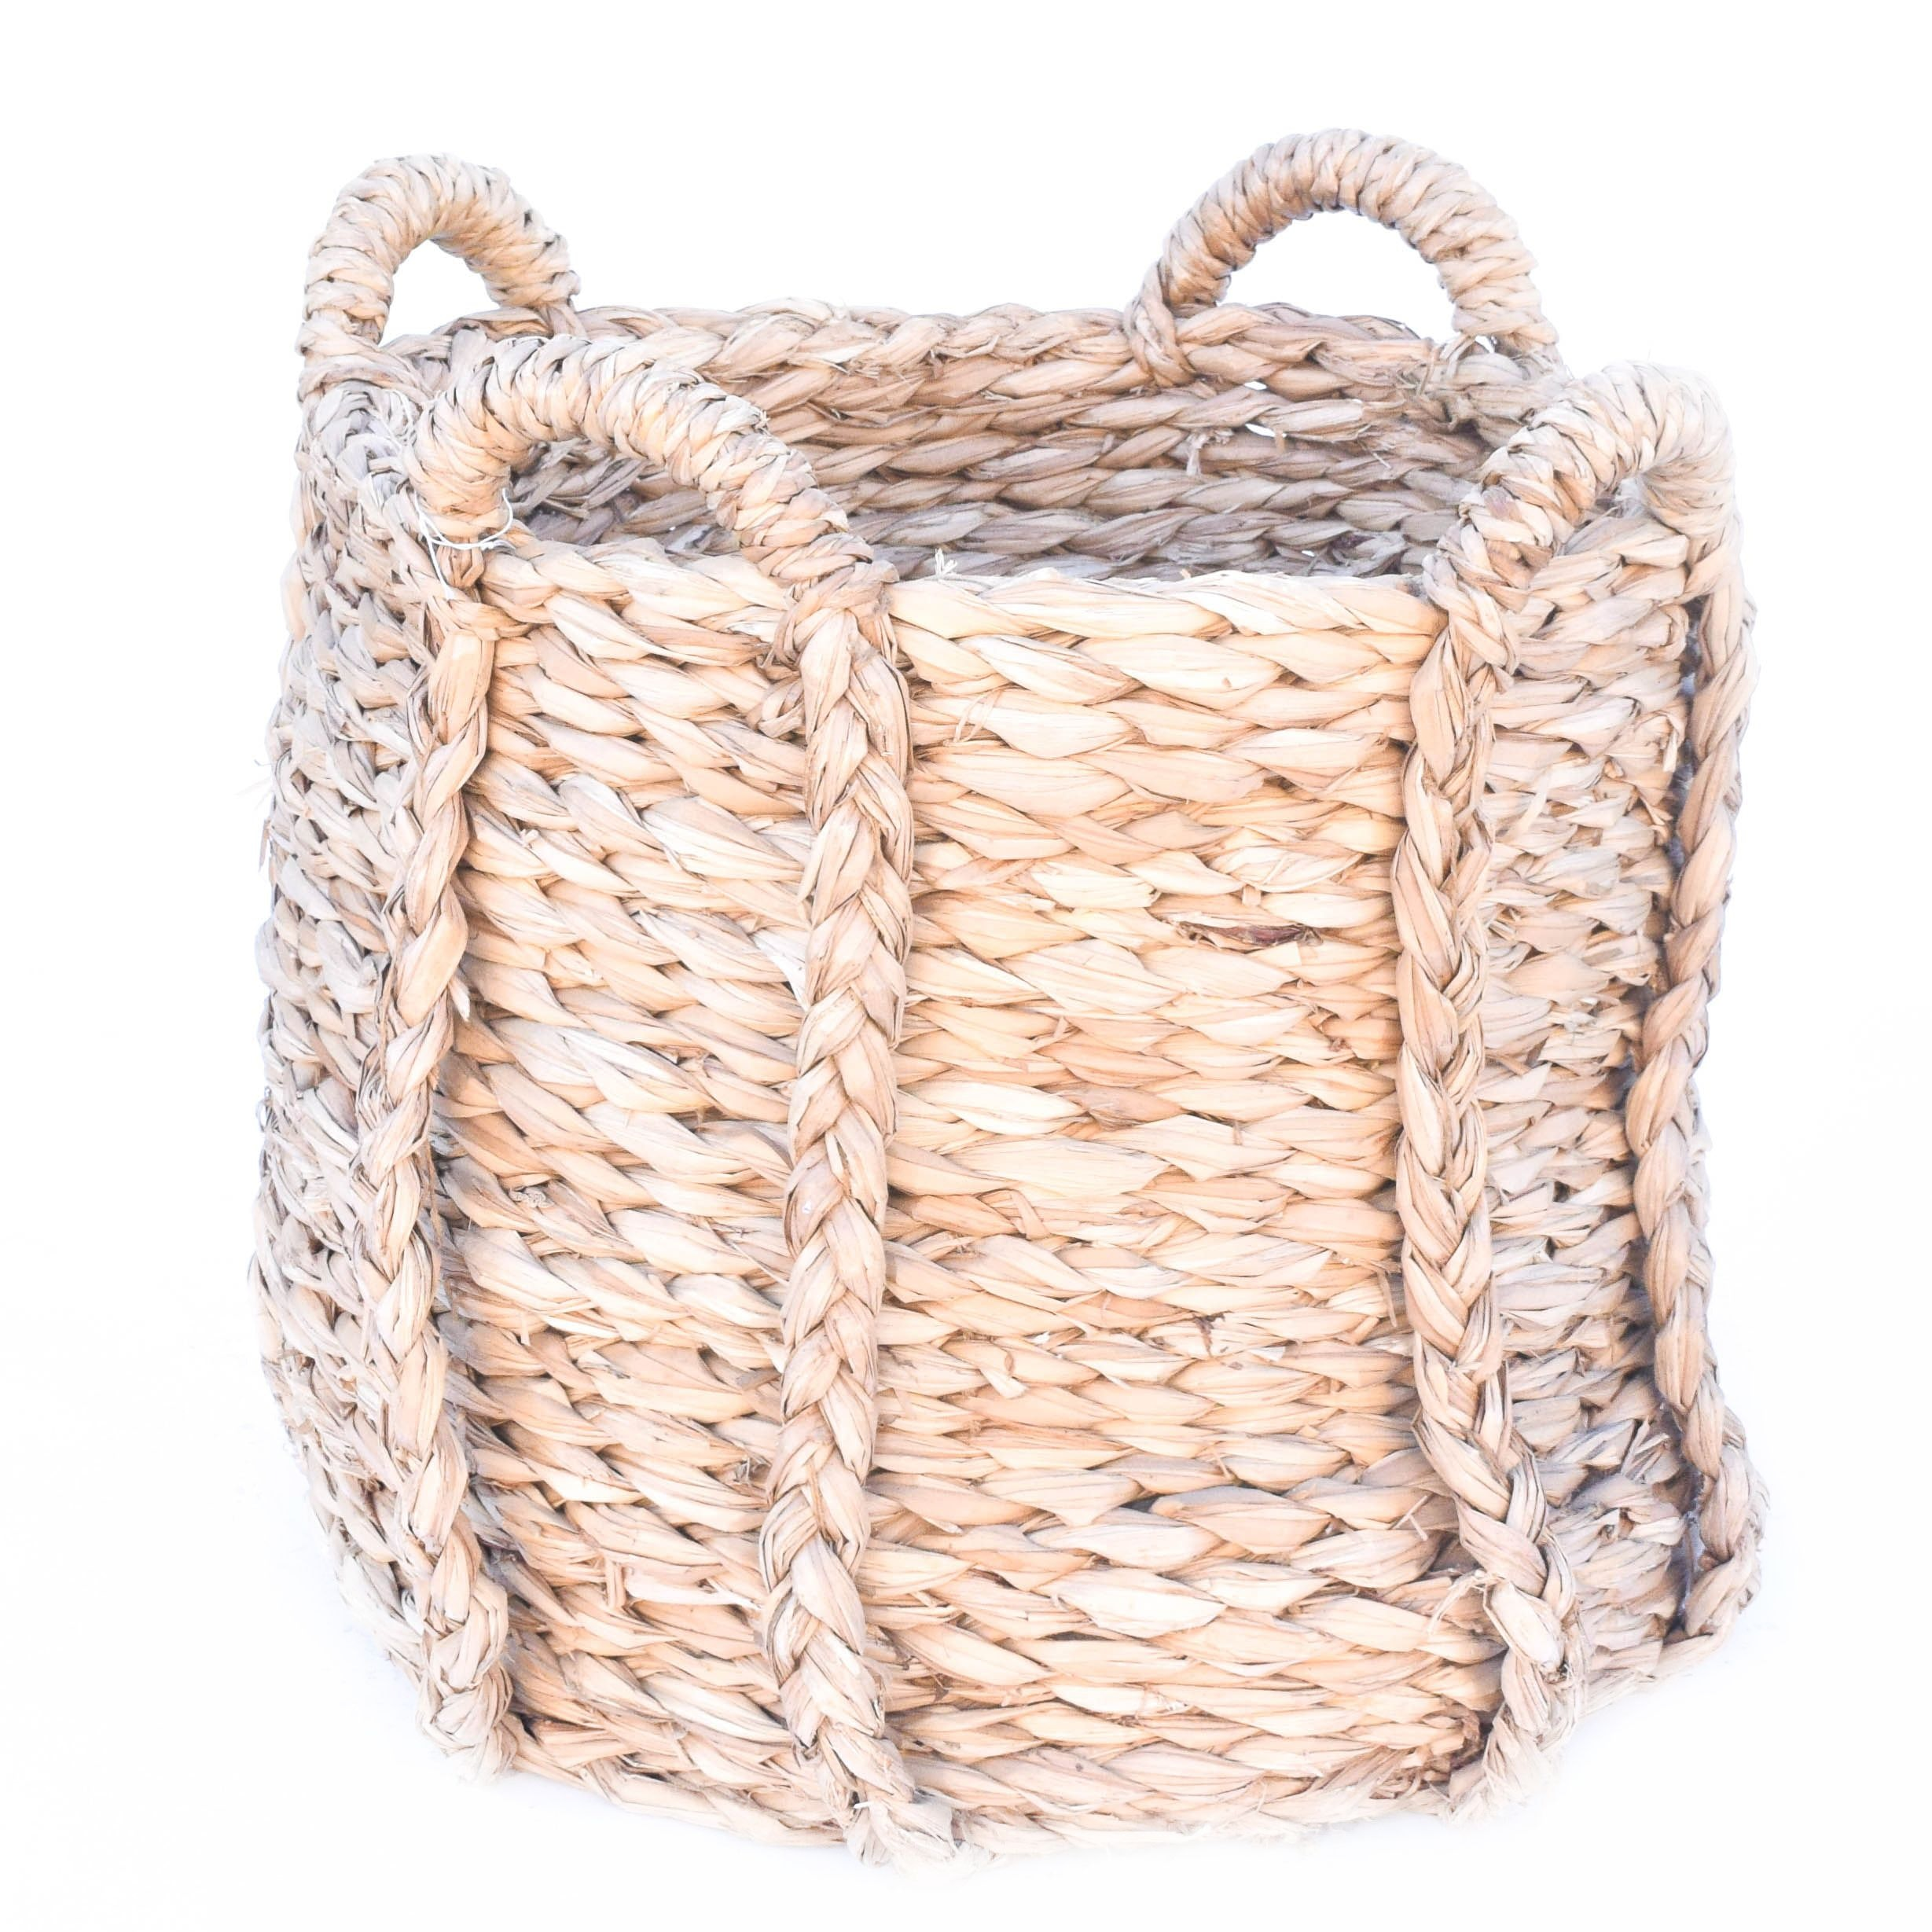 Restoration Hardware Woven Four Handle Seagrass Basket